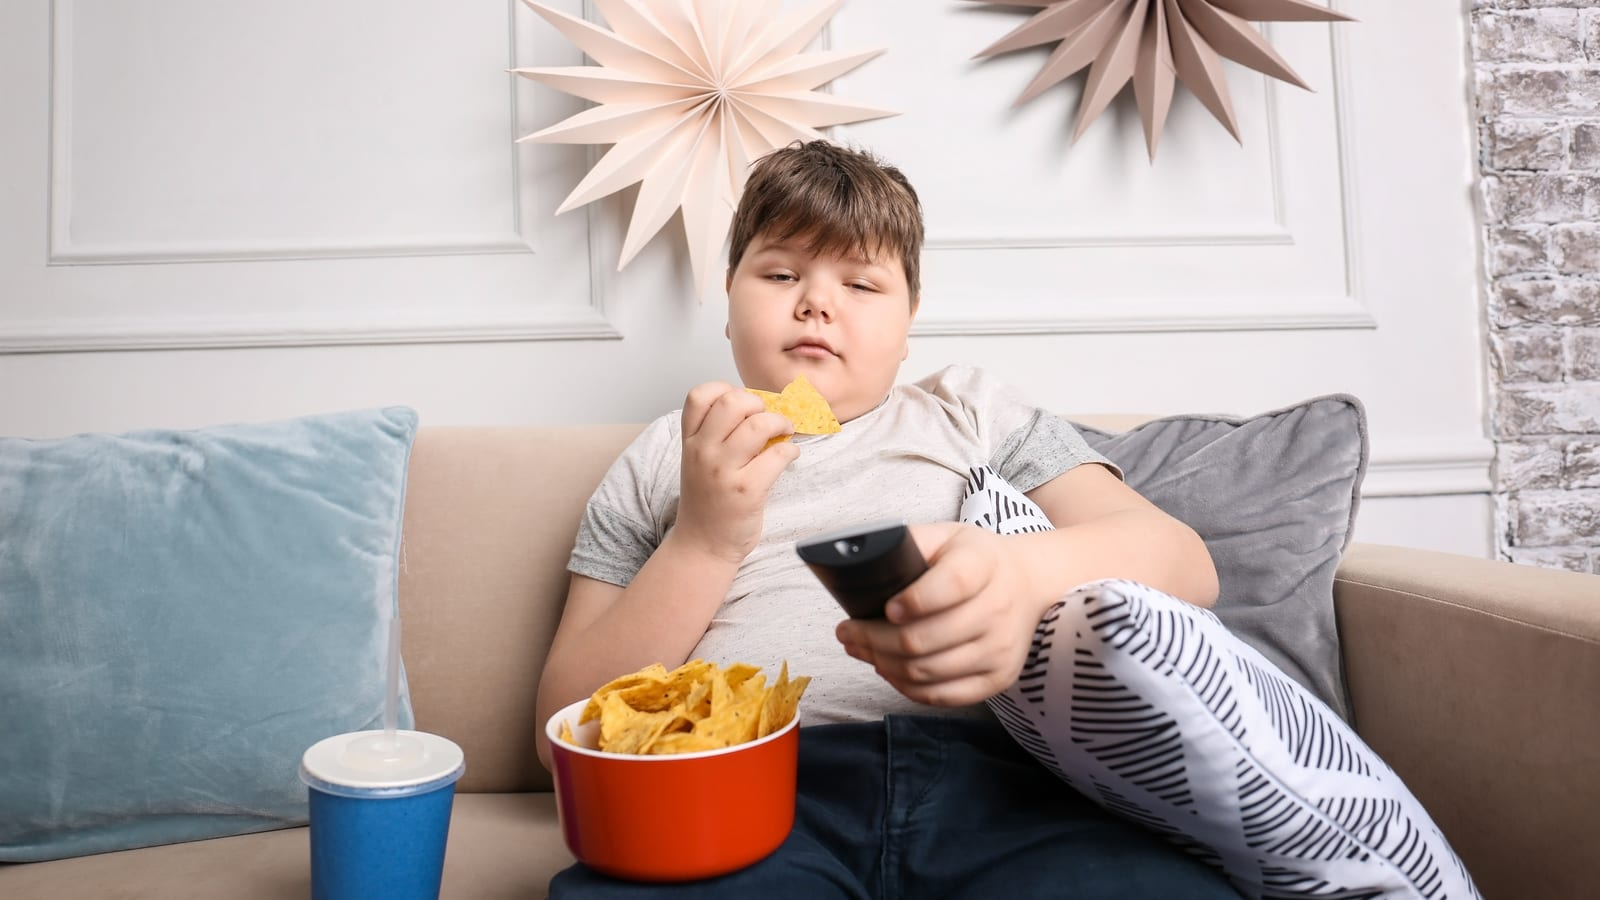 An obese child eating chips